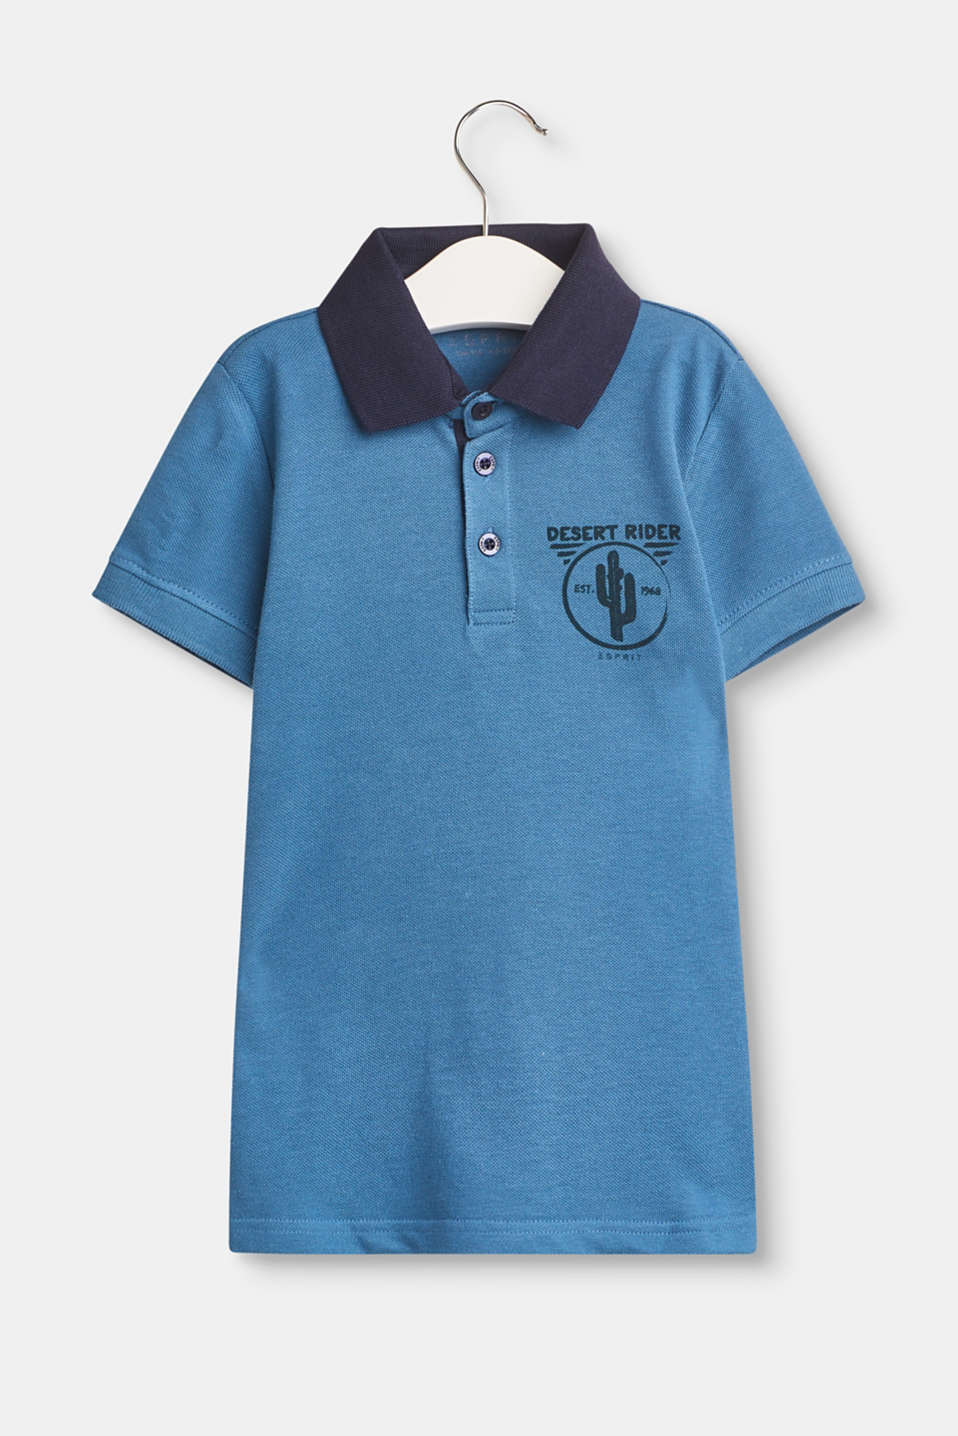 Esprit - Polo shirt in cotton piqué with a front print